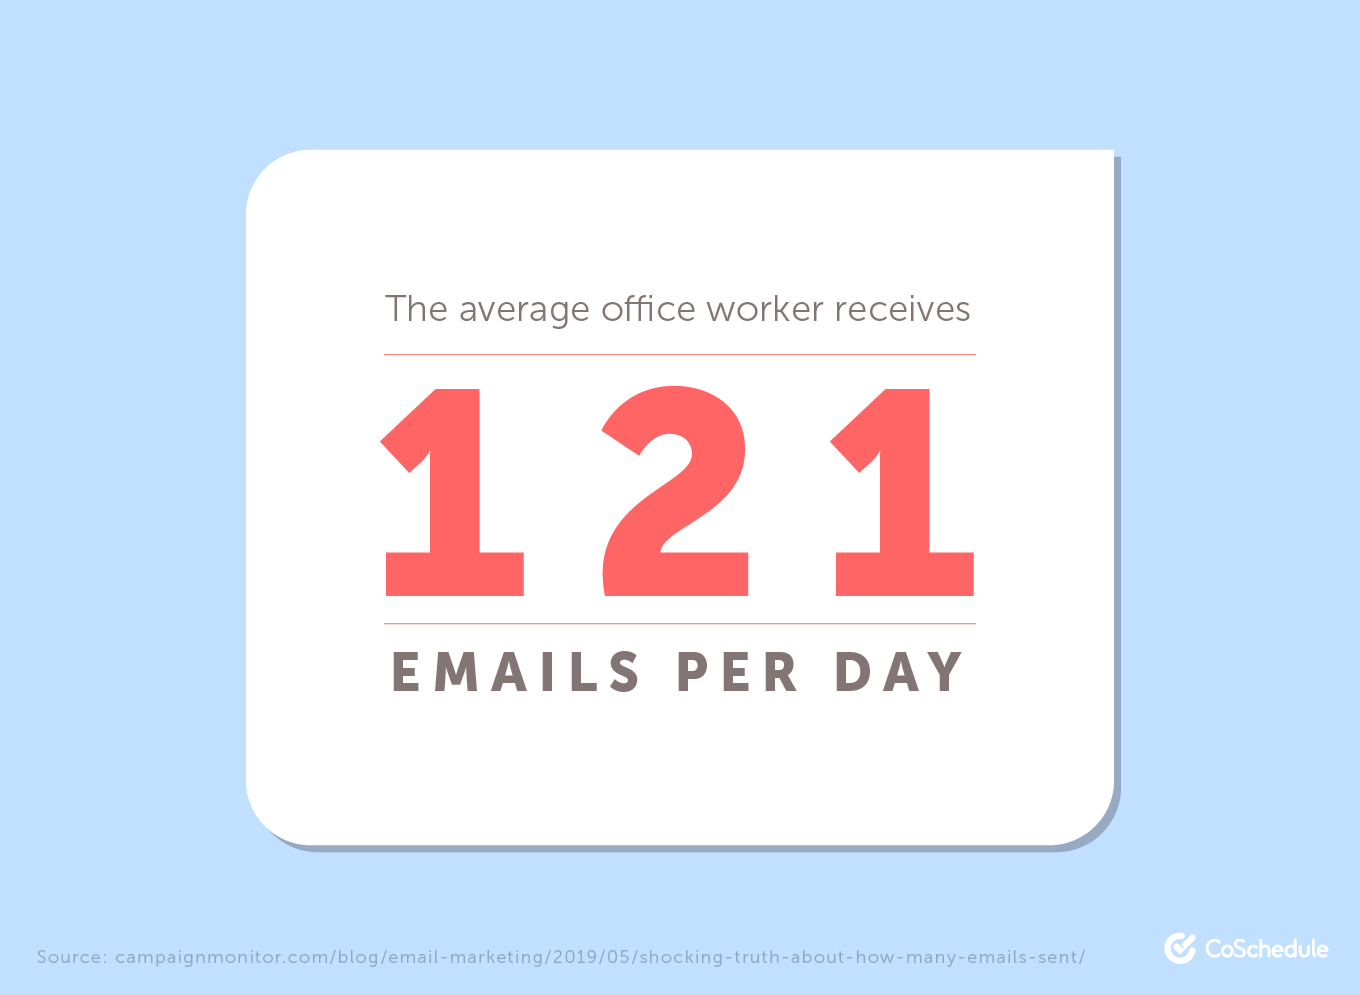 The average office worker receives 121 emails per day